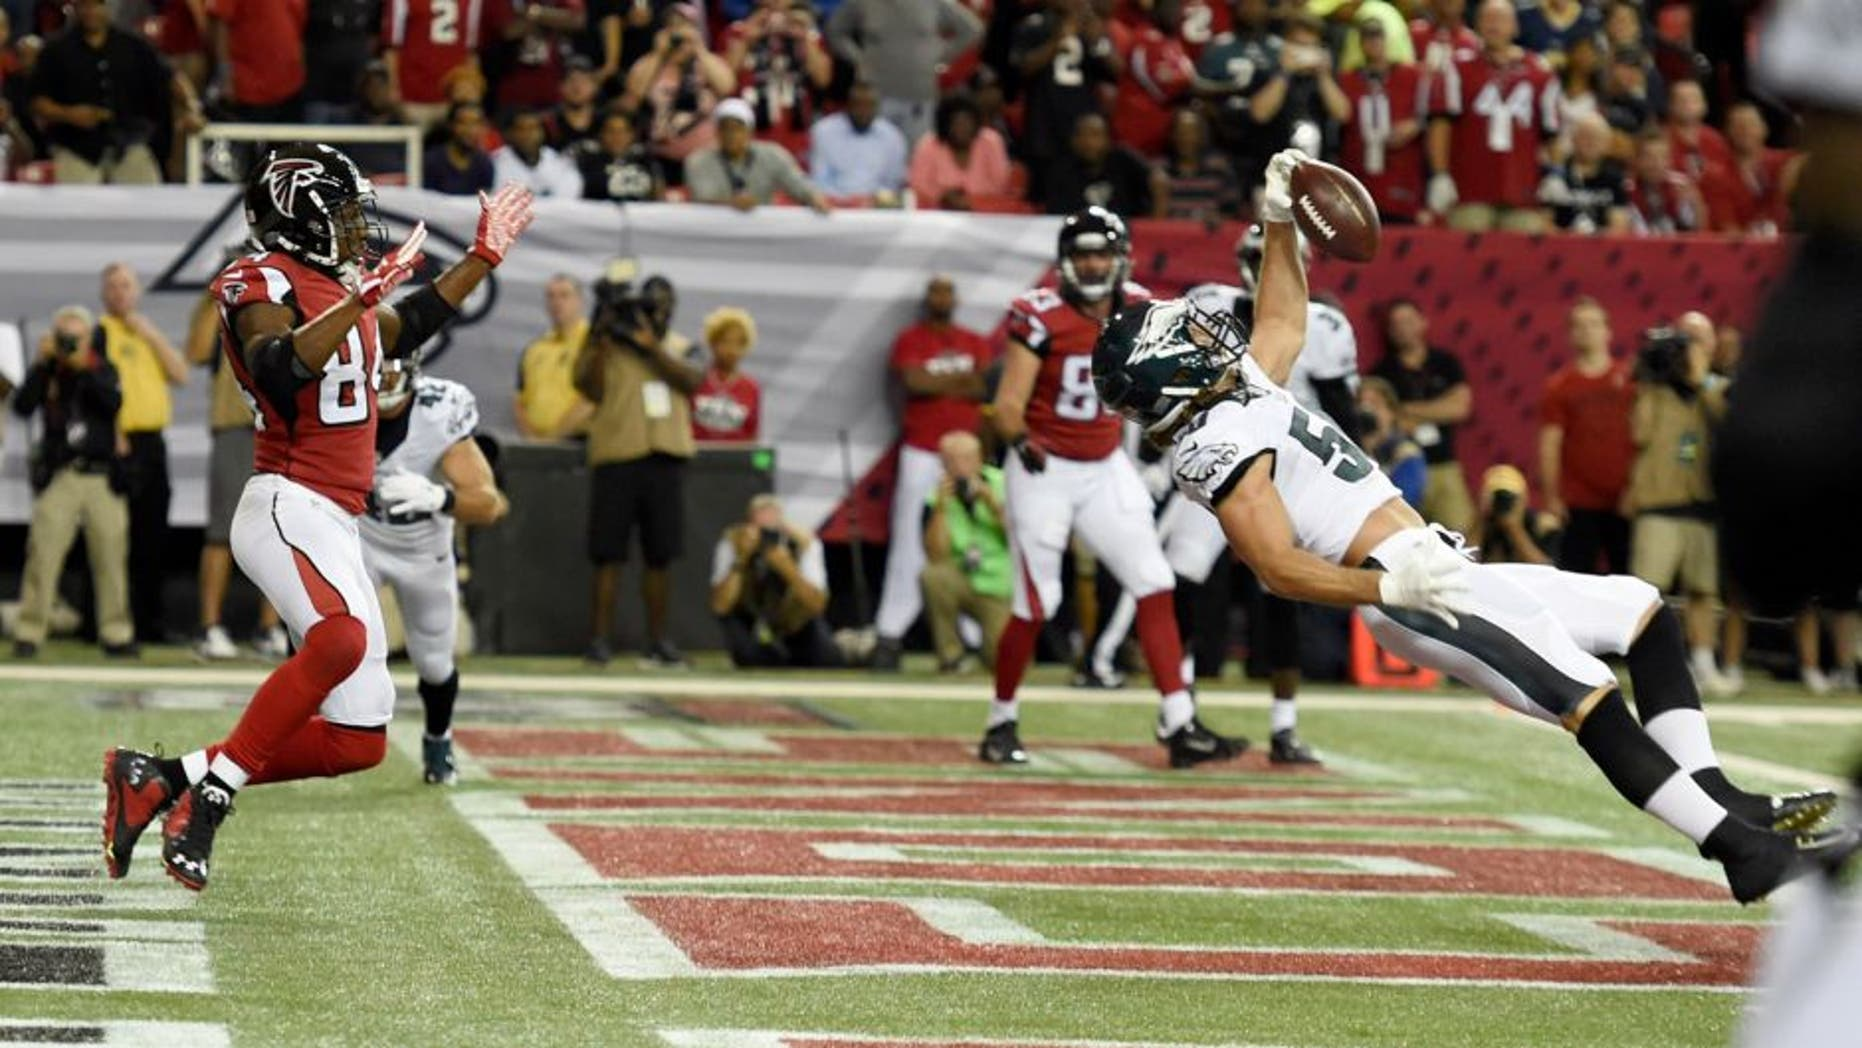 Sep 14, 2015; Atlanta, GA, USA; Philadelphia Eagles linebacker Kiko Alonso (50) intercepts a pass intended for Atlanta Falcons wide receiver Roddy White (84) in the first quarter at the Georgia Dome. Mandatory Credit: Dale Zanine-USA TODAY Sports